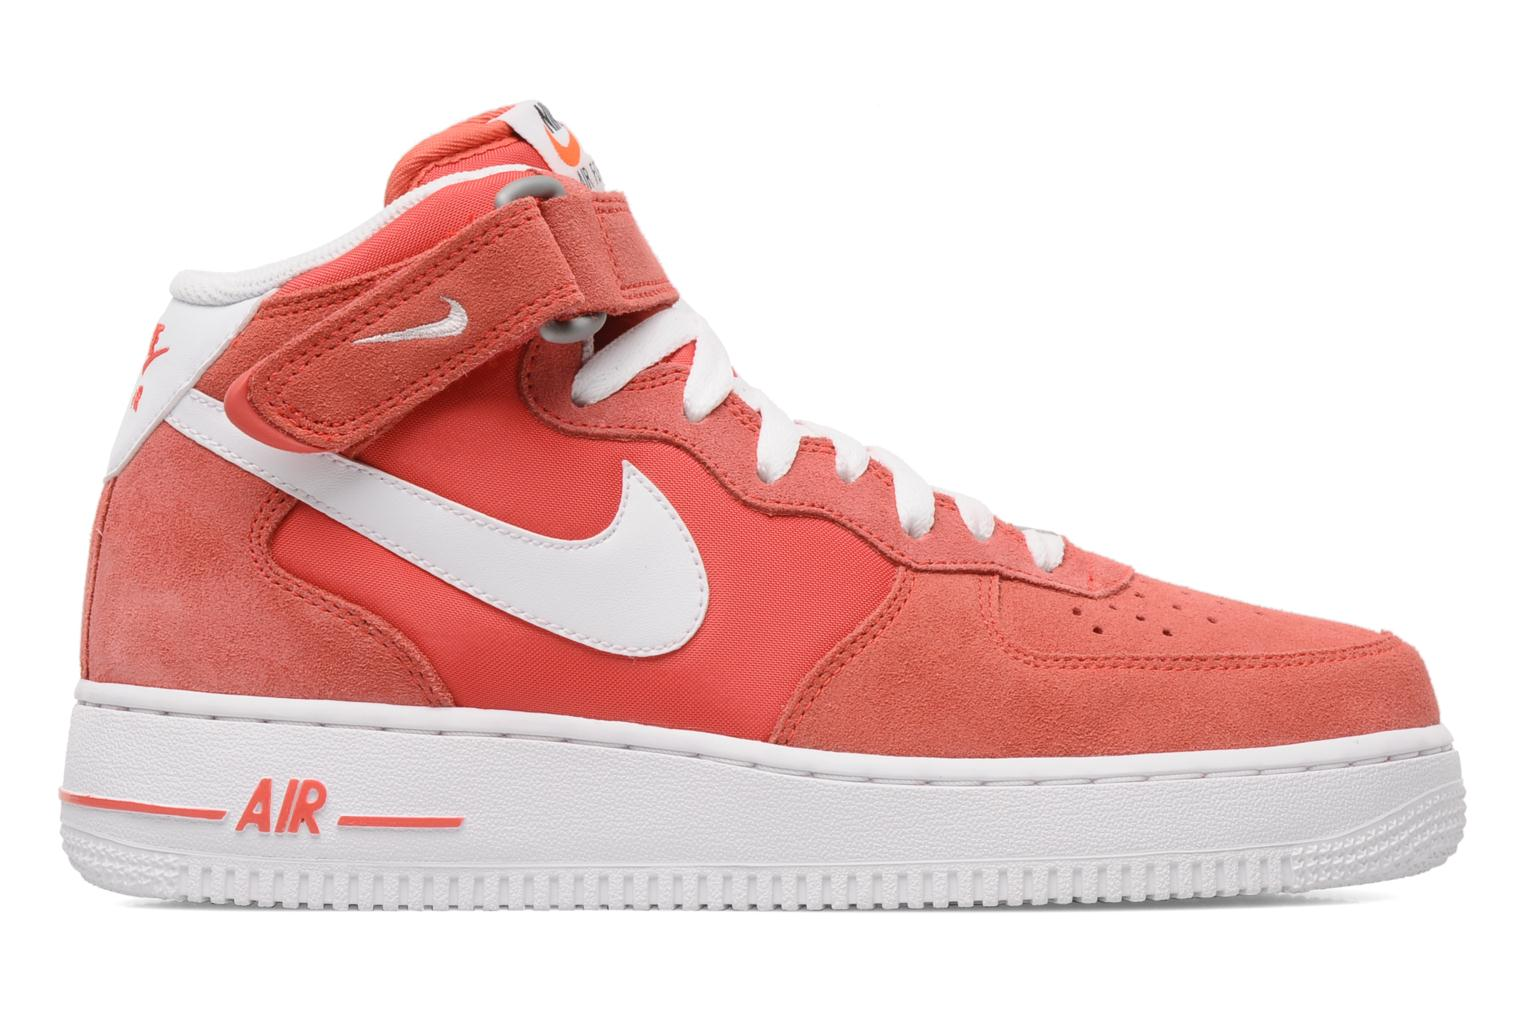 nike air force 1 mid trainers in pink at 154167. Black Bedroom Furniture Sets. Home Design Ideas